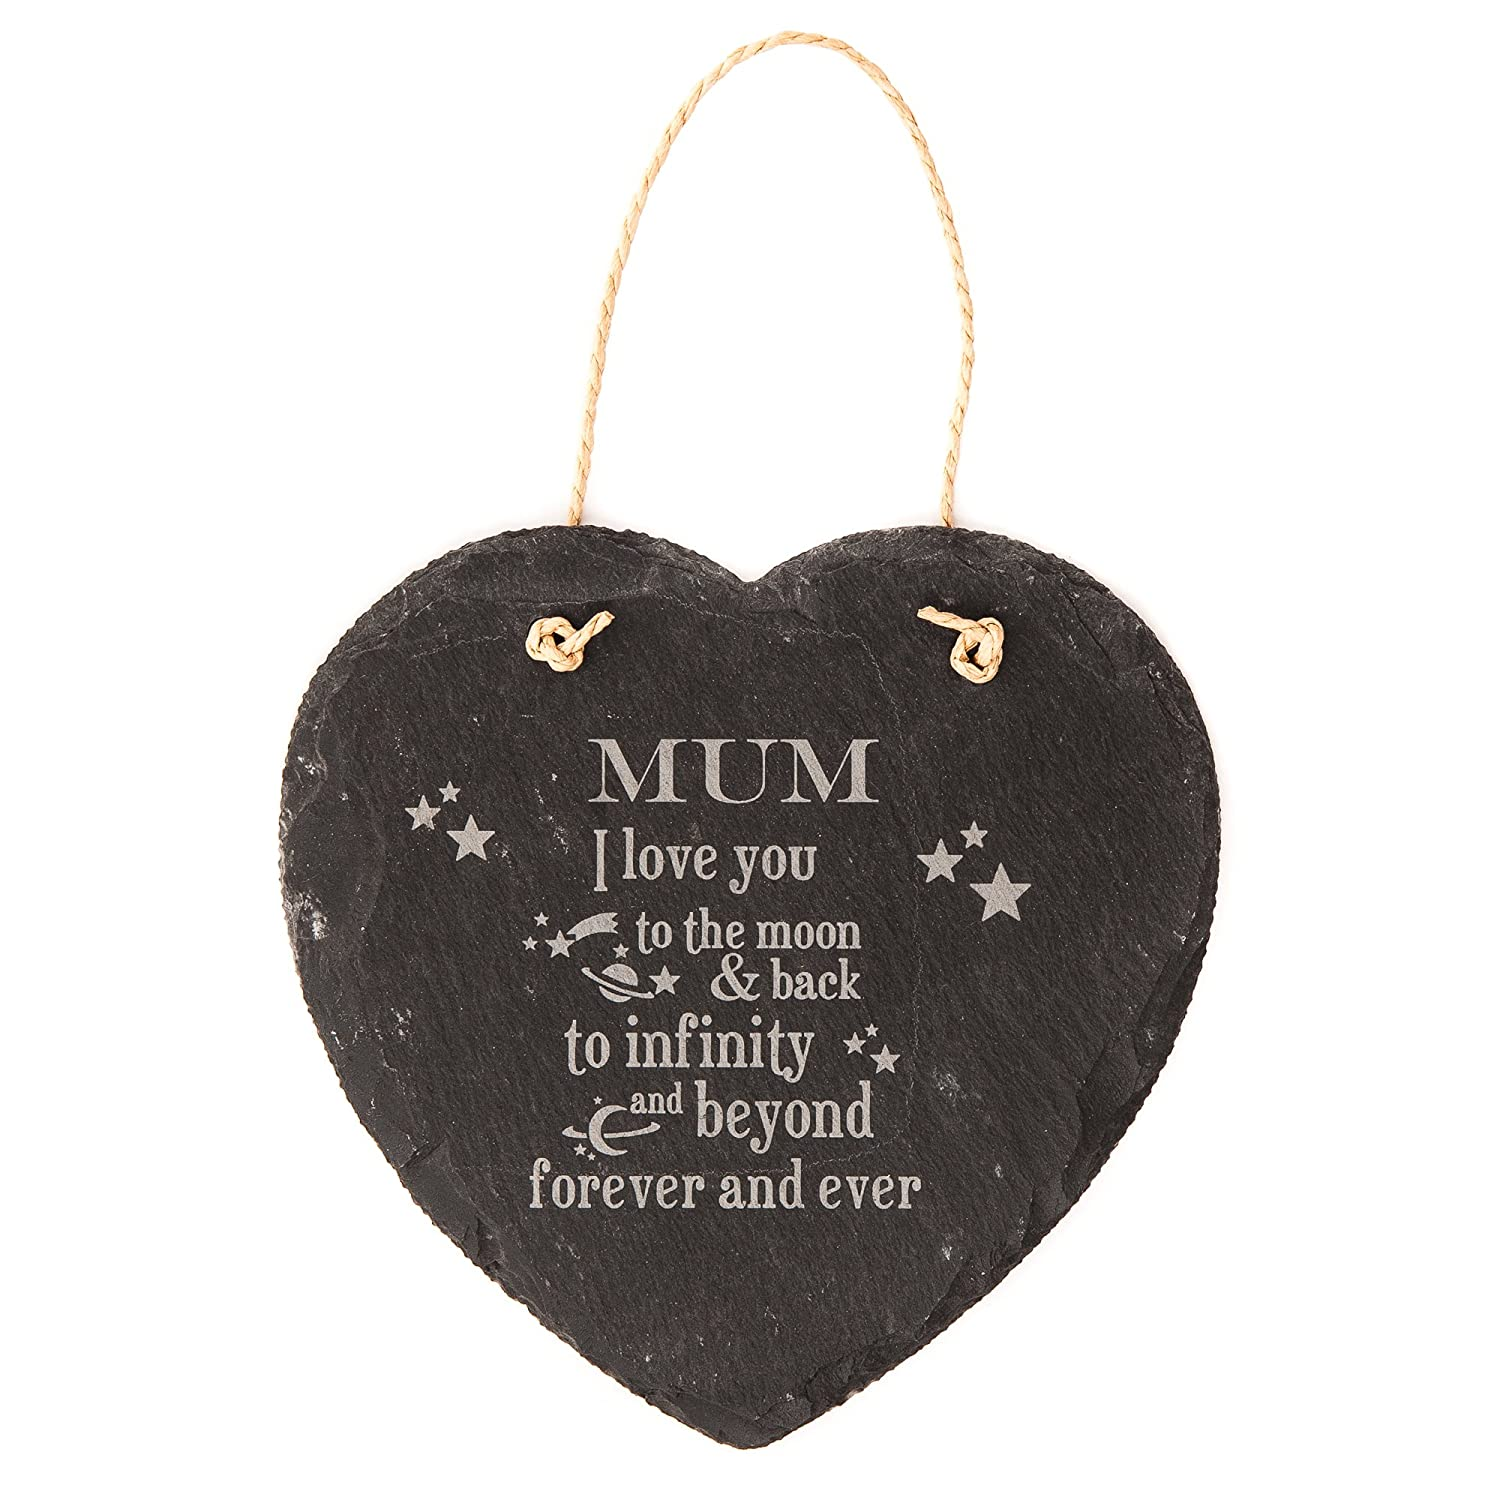 Hoolaroo Engraved Heart Hanging Slate Sign 14cm I love you to the moon and back, to infinity and beyond forever and ever 506024dfq